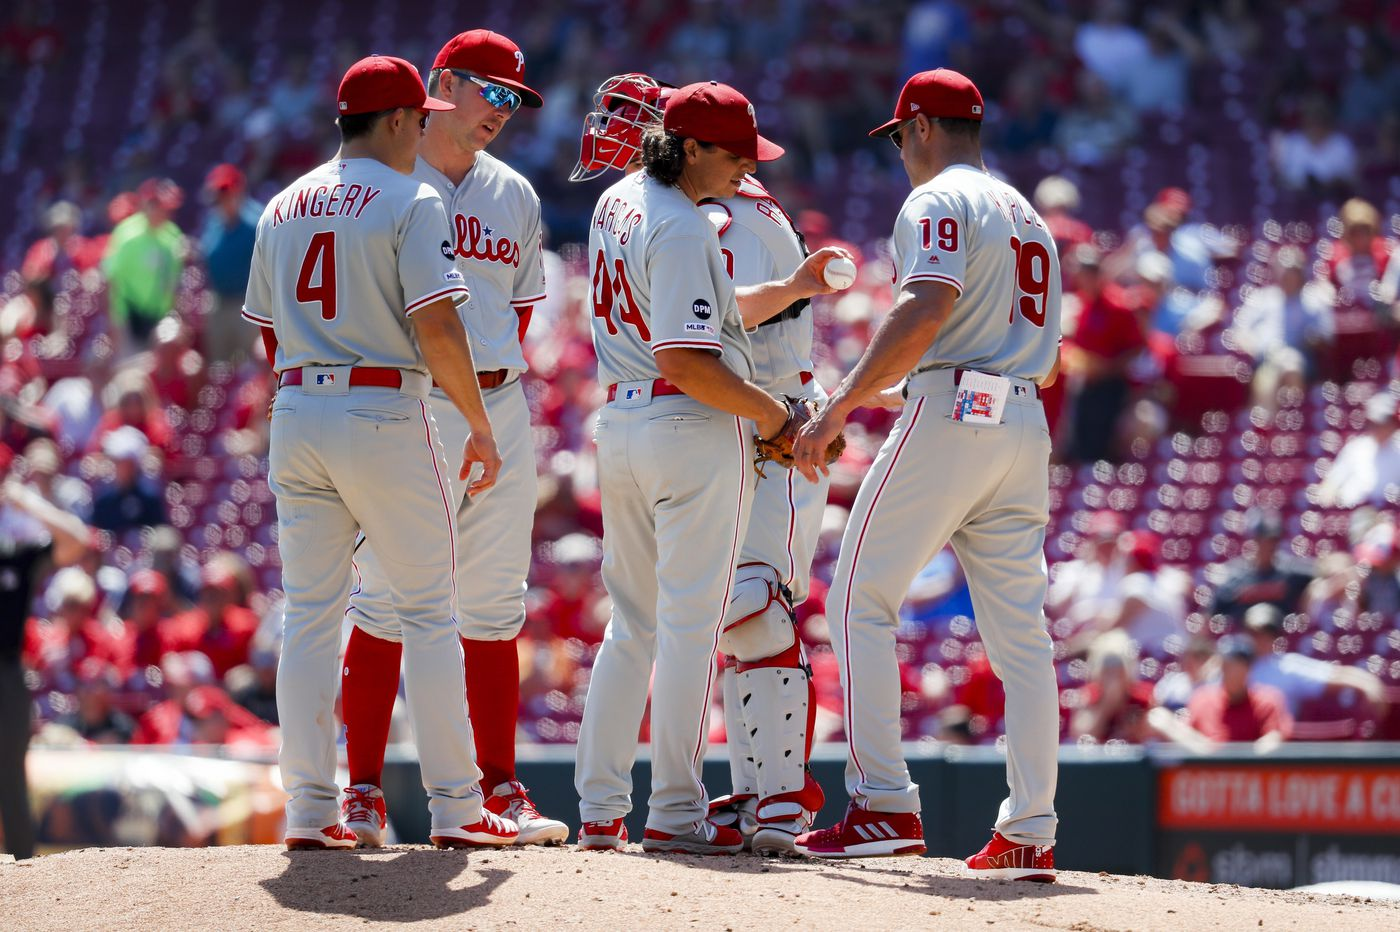 Phillies' walk-off loss to Reds leaves them 4 games behind Cubs in wild-card race | Extra Innings